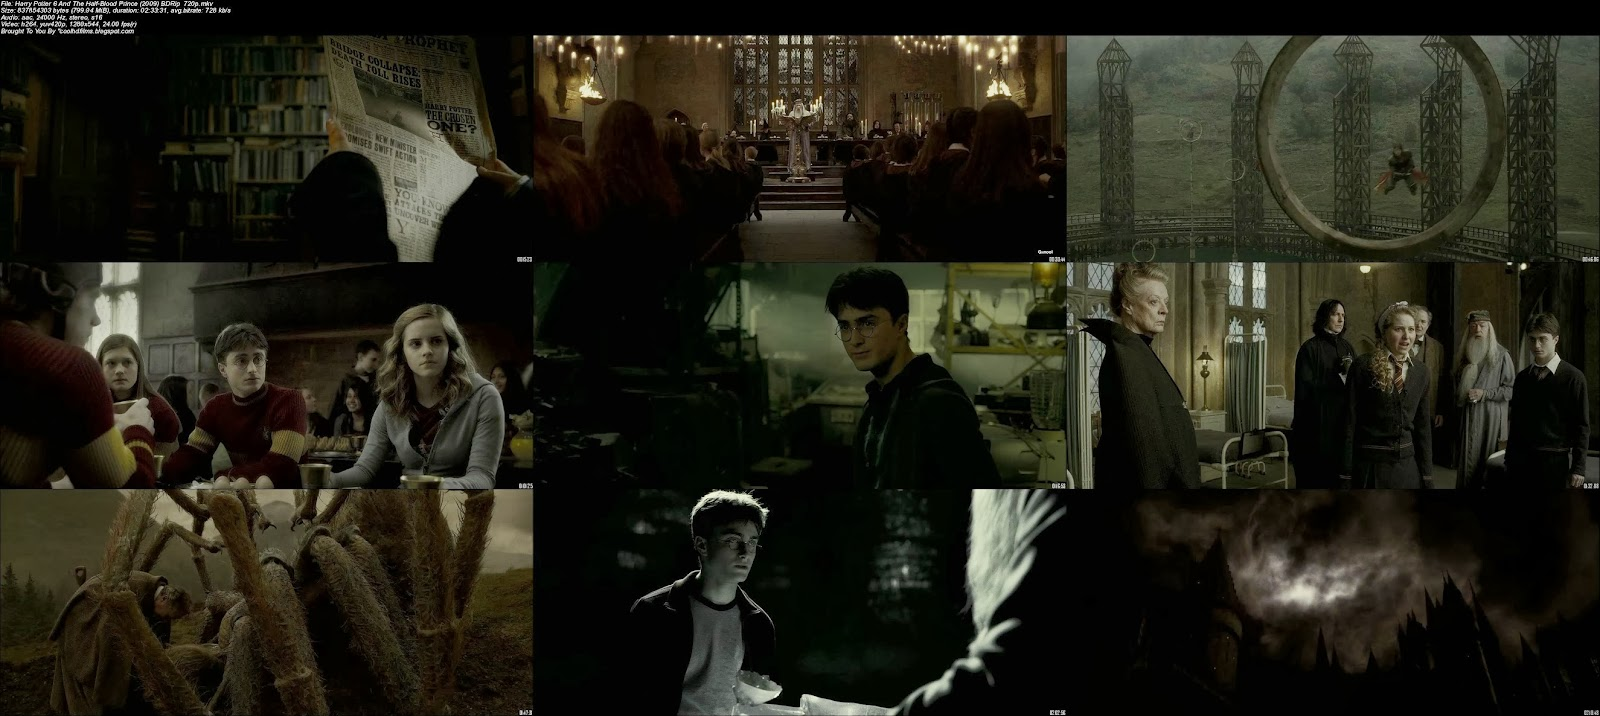 free hd films download harry potter 6 and the halfblood